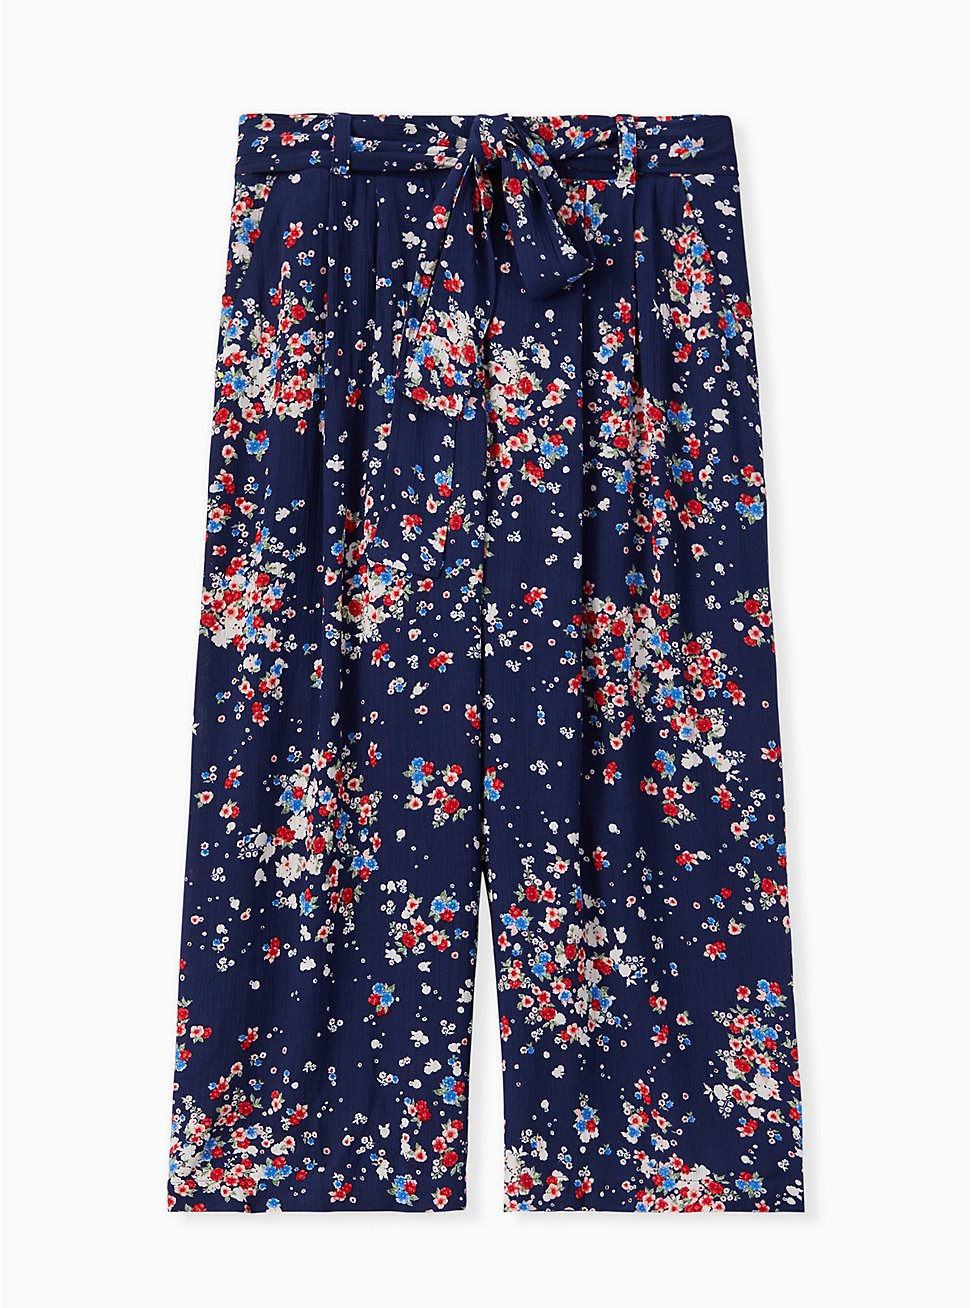 Navy Disty Floral Crinkled Gauze Self Tie Culotte Pant , DITSY DOT, hi-res